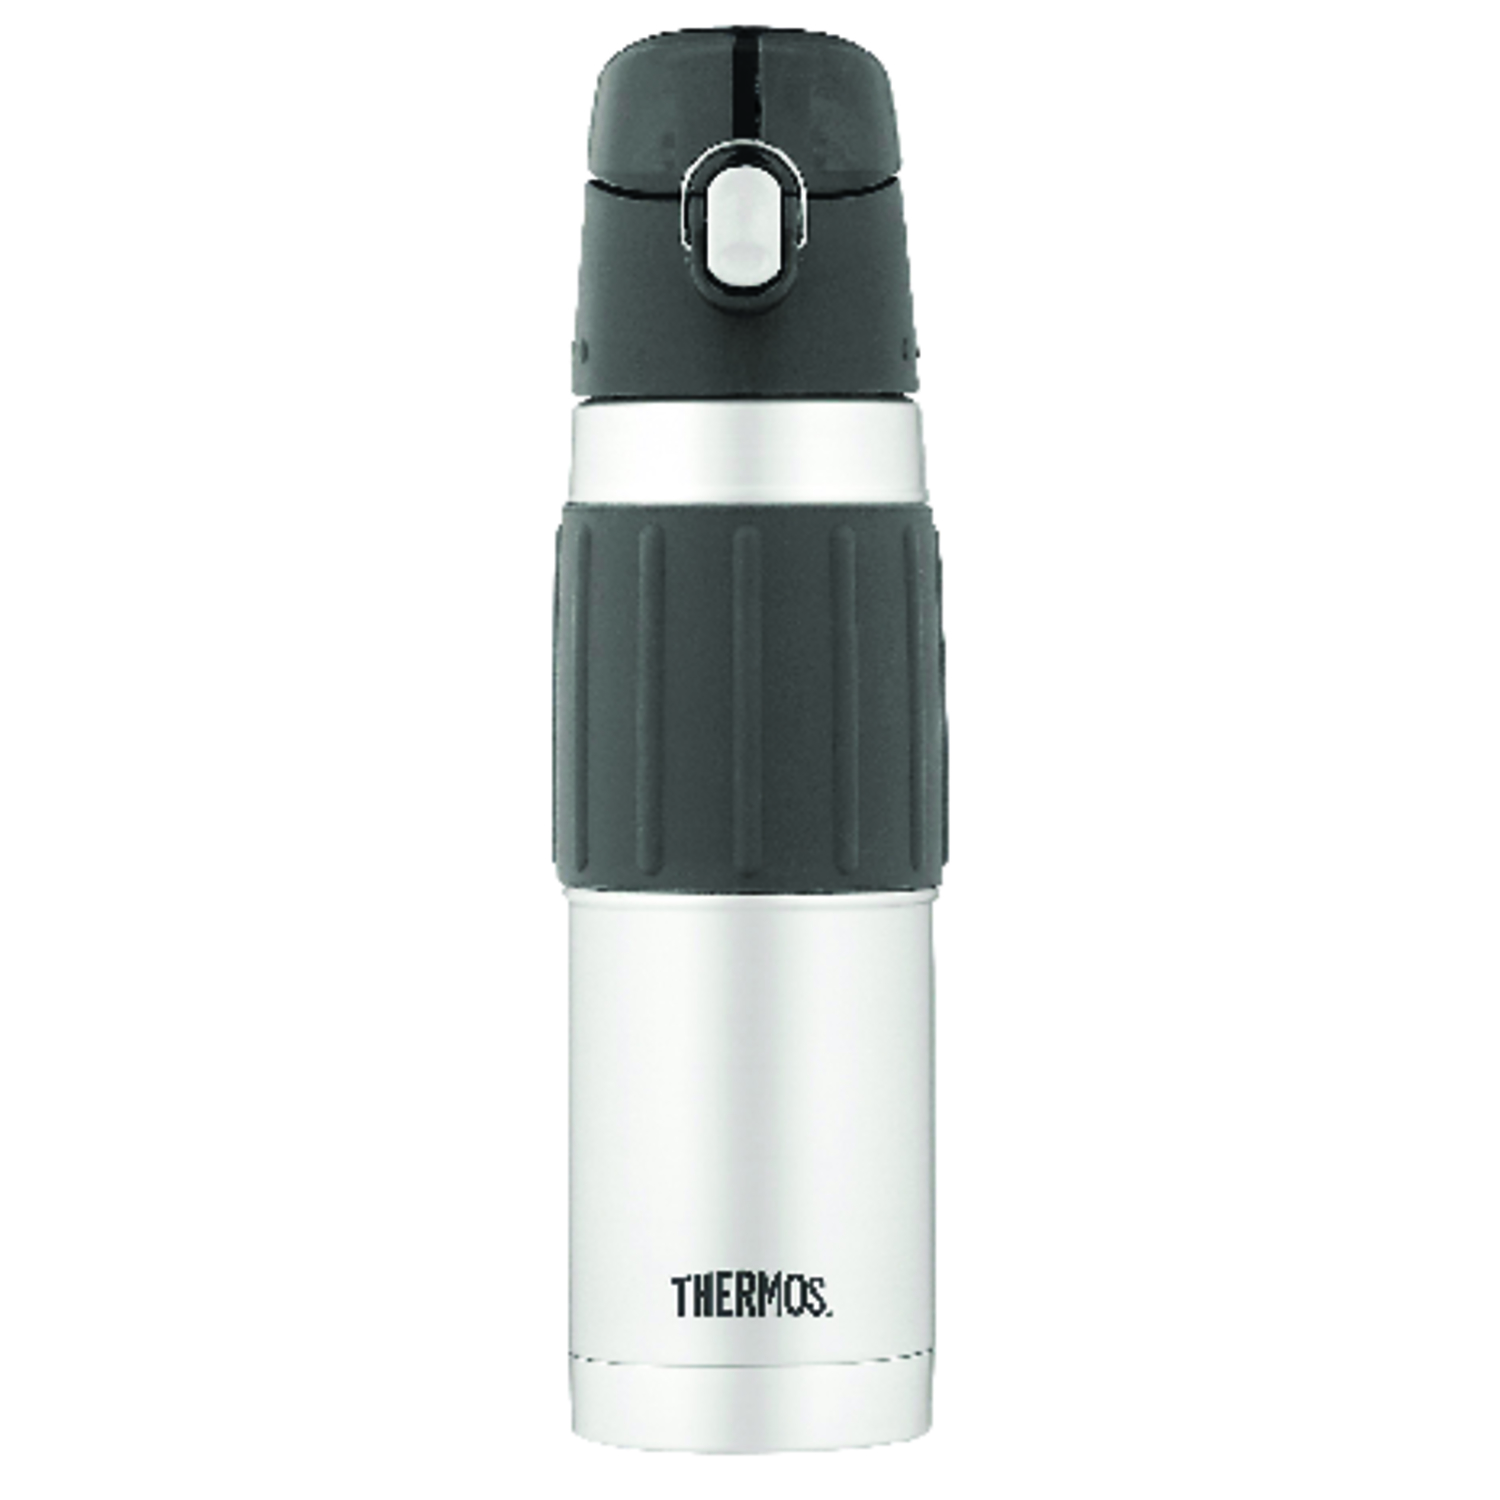 Thermos Hydration (Water) Bottle 18 oz. Stainless Steel